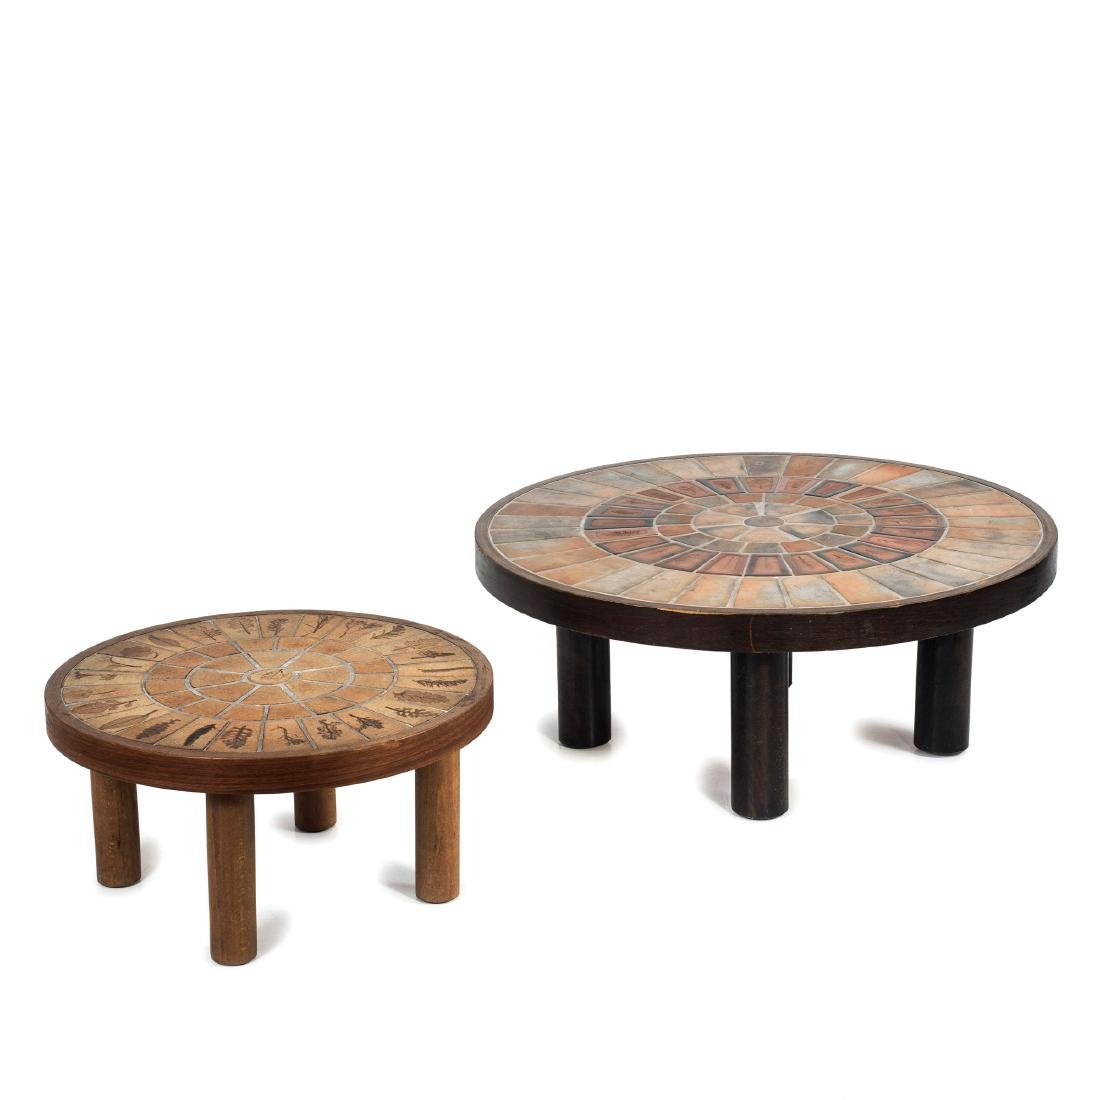 Two 'Garrigue' side tables, c. 1955